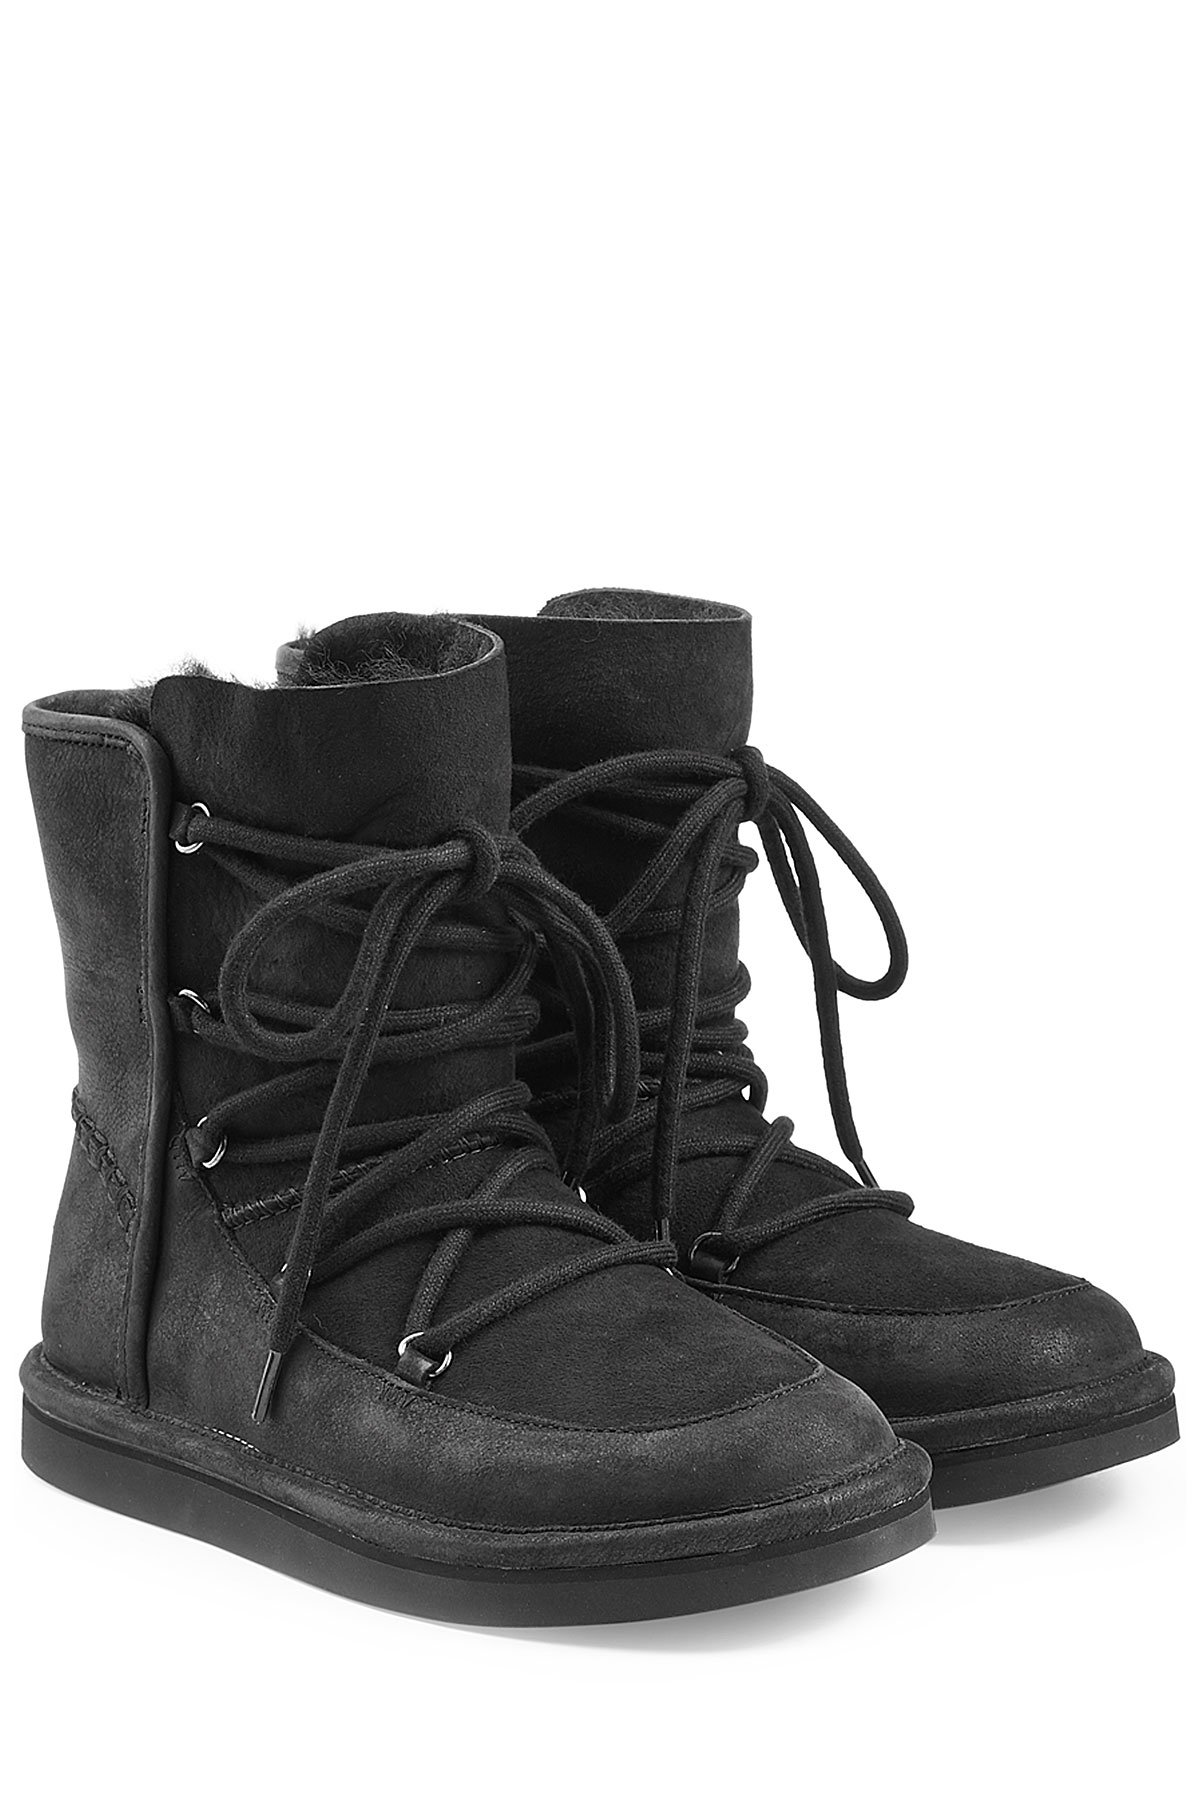 Ugg Lodge Water Resistant Suede Boots In Black Lyst